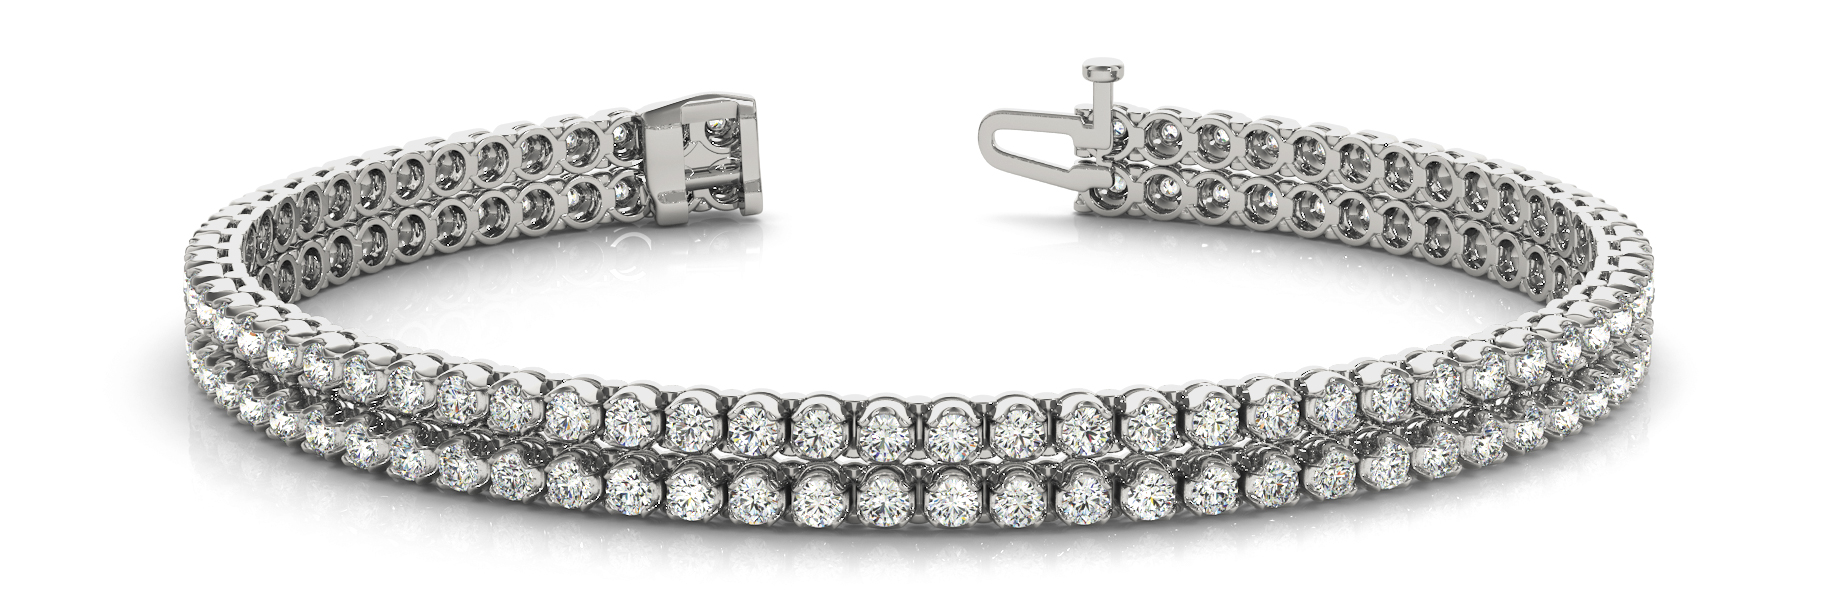 Multi Row Duo Round Diamond Bracelet 1.86 Ct.